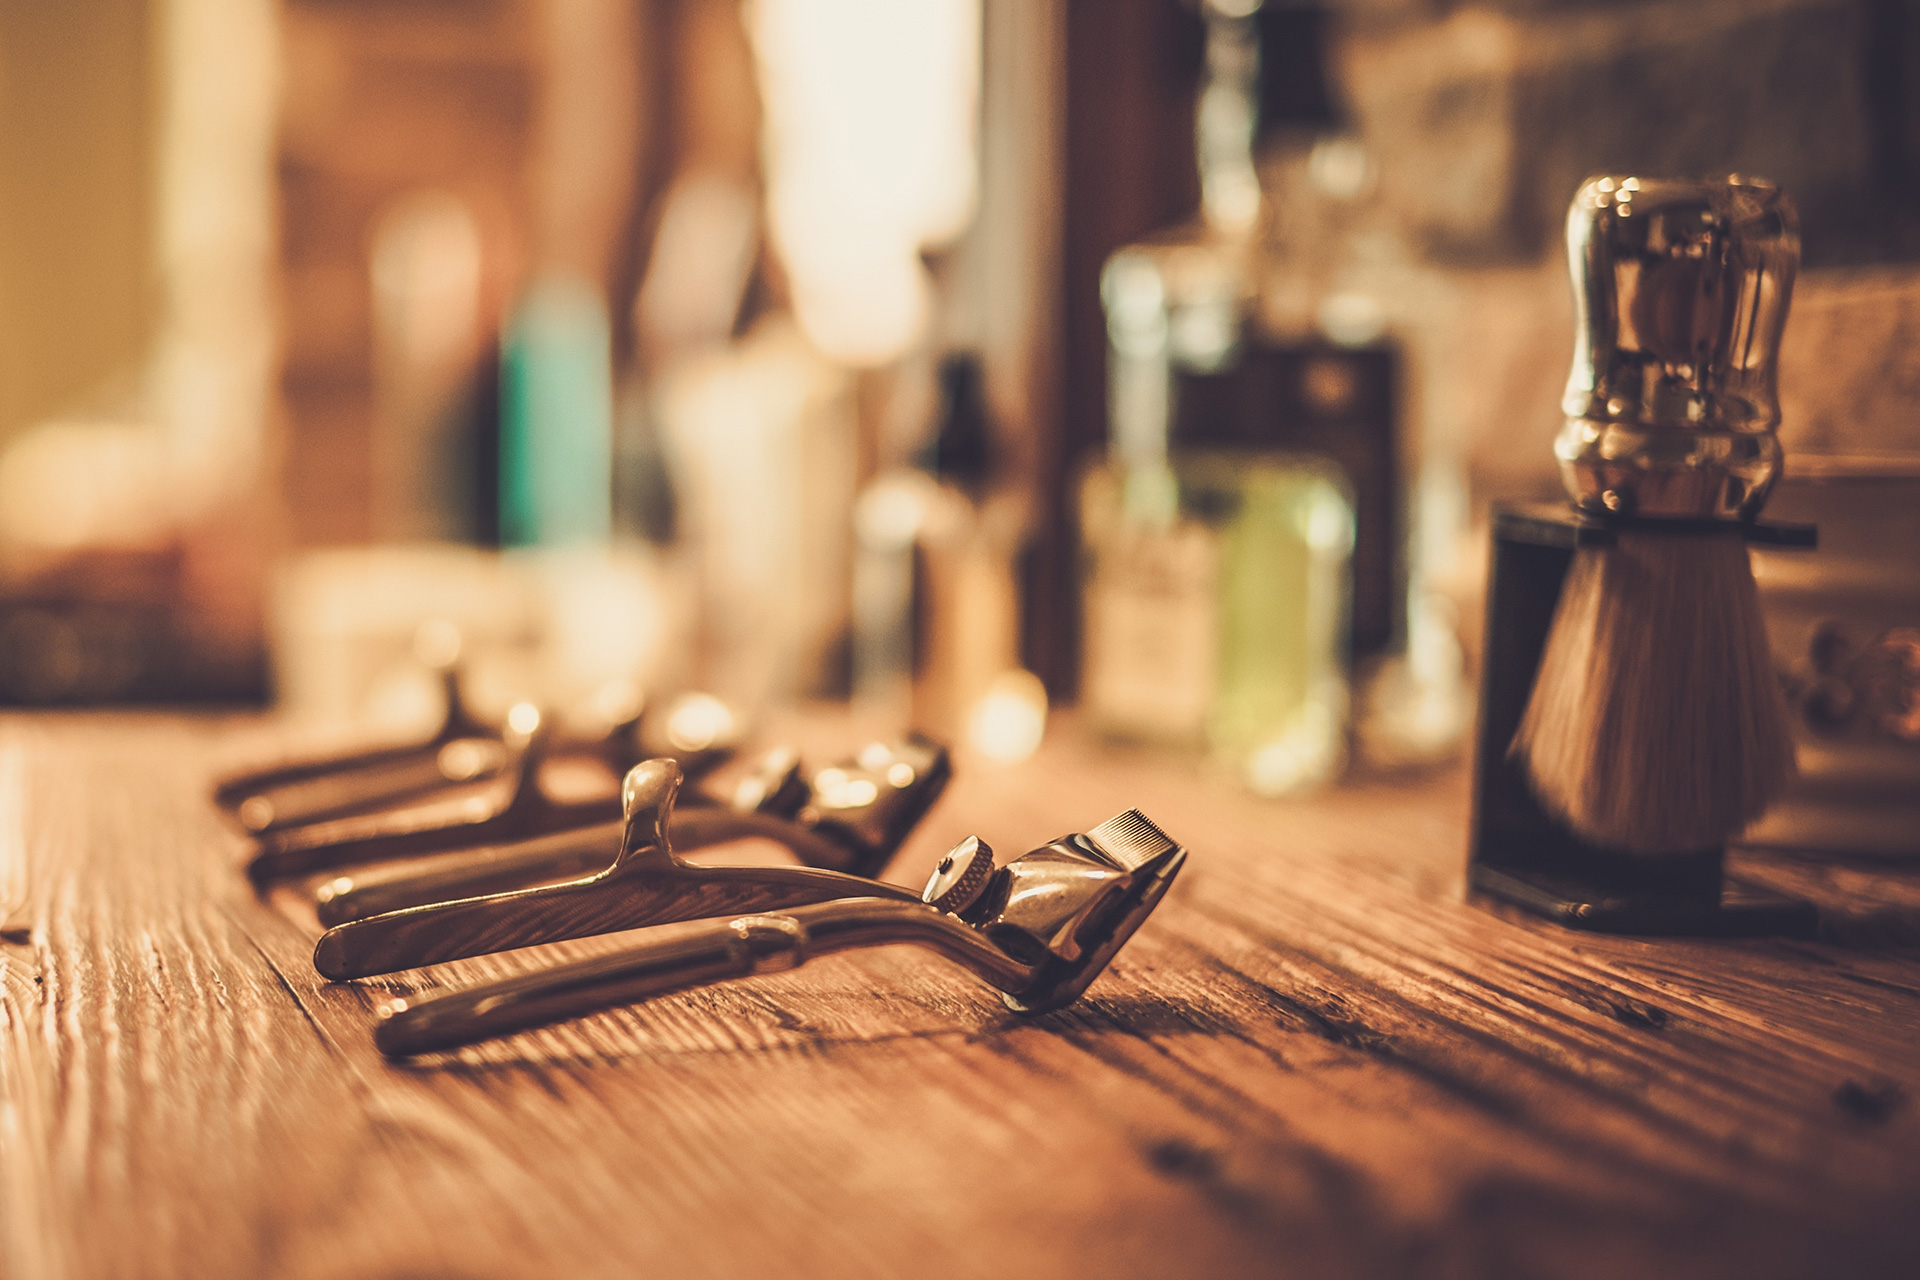 Bloodletting: An Early Treatment used by Barbers, Surgeons